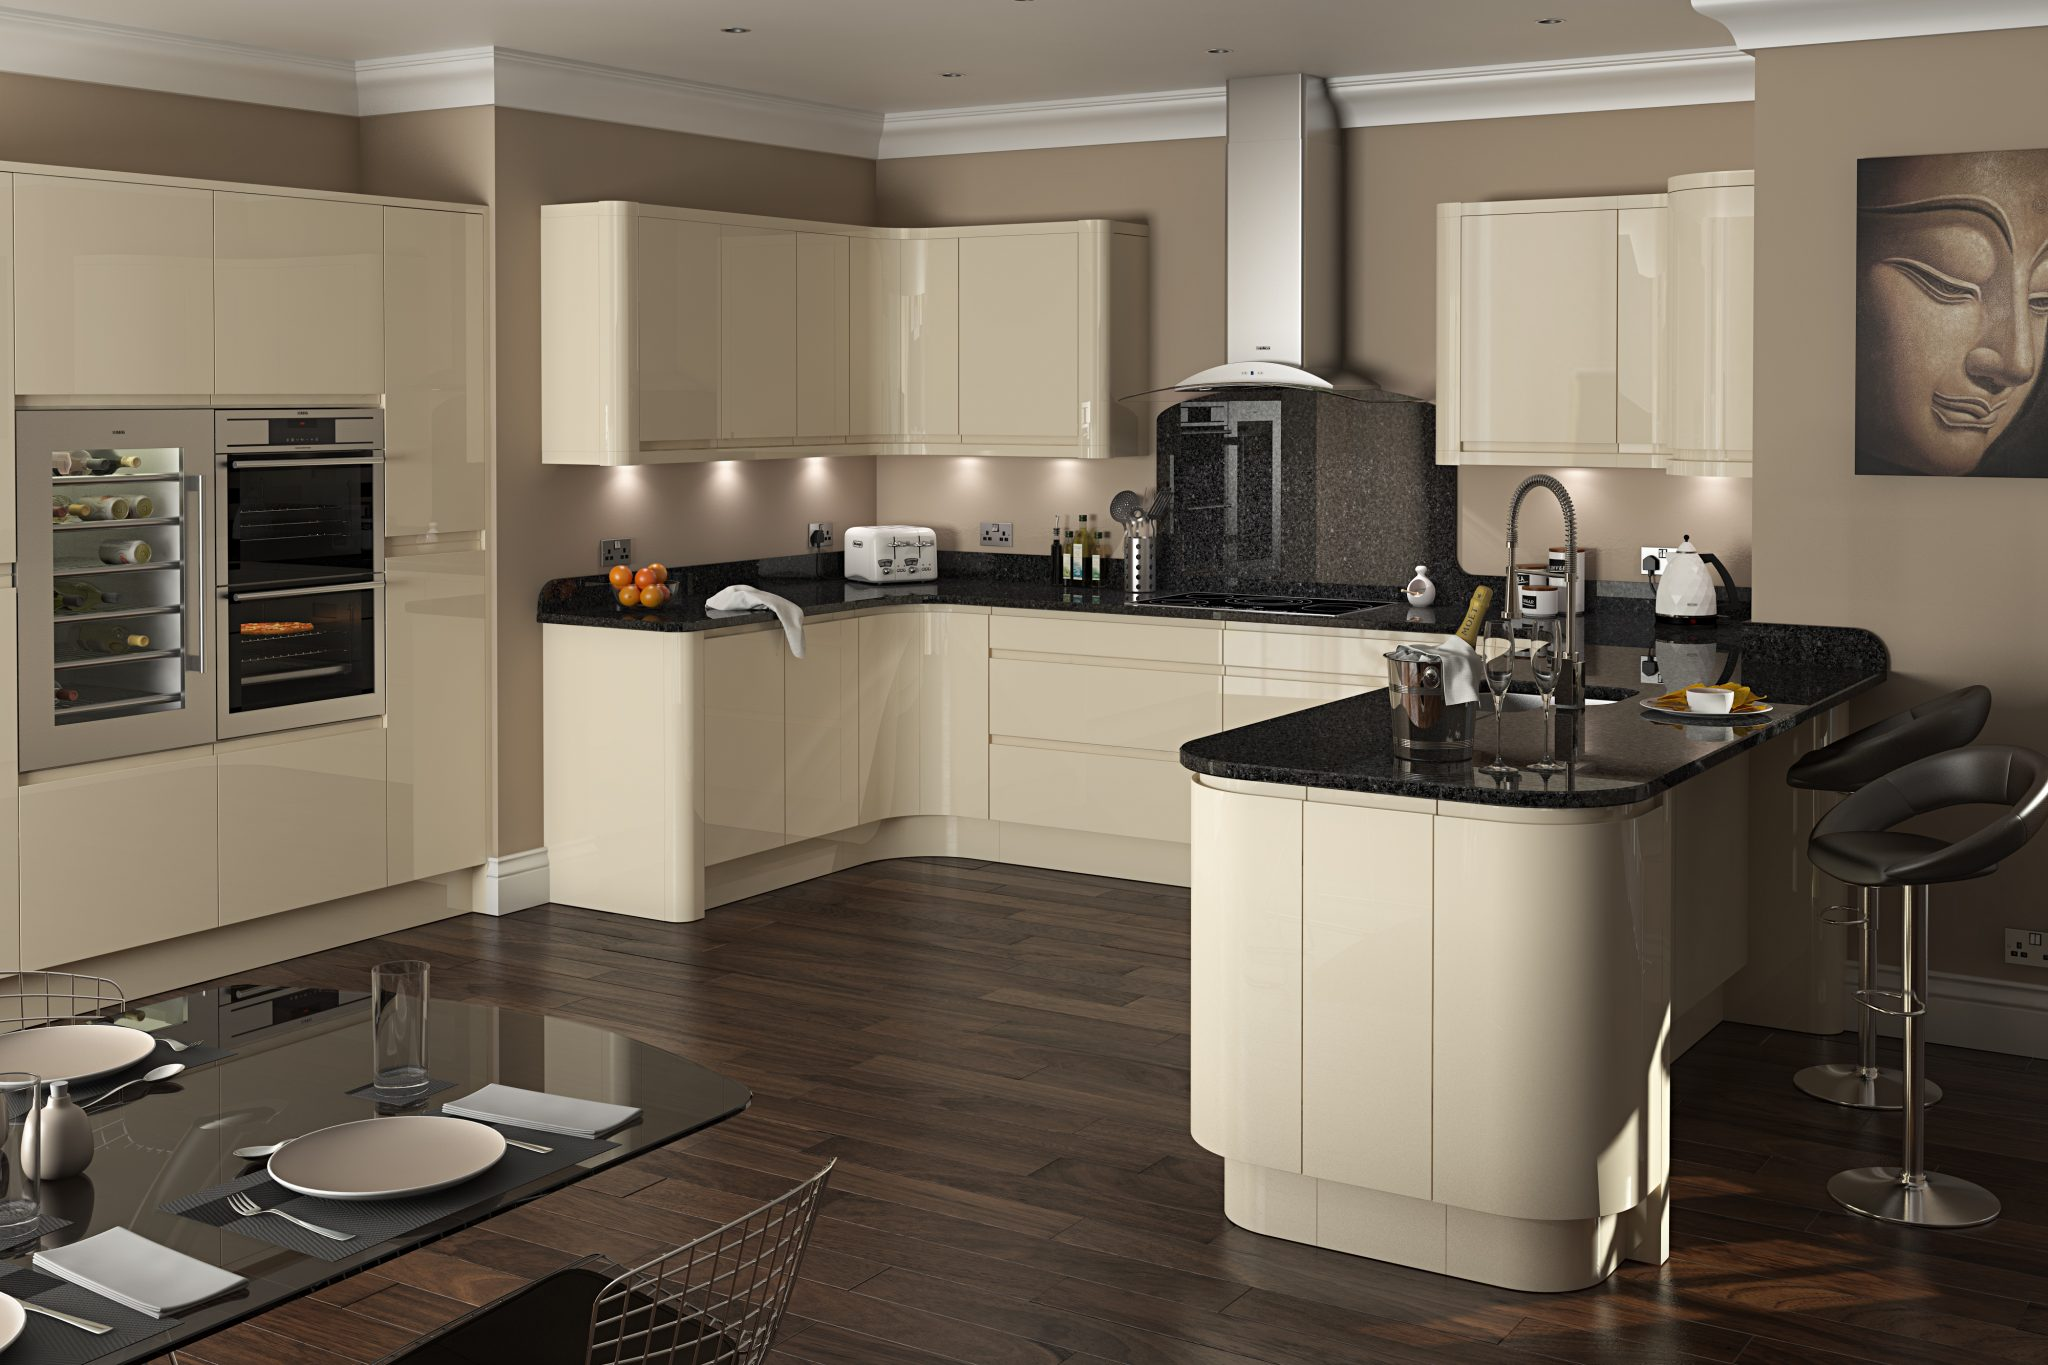 Kitchen design kitchens wirral bespoke luxury designs for Kitchen designs ideas